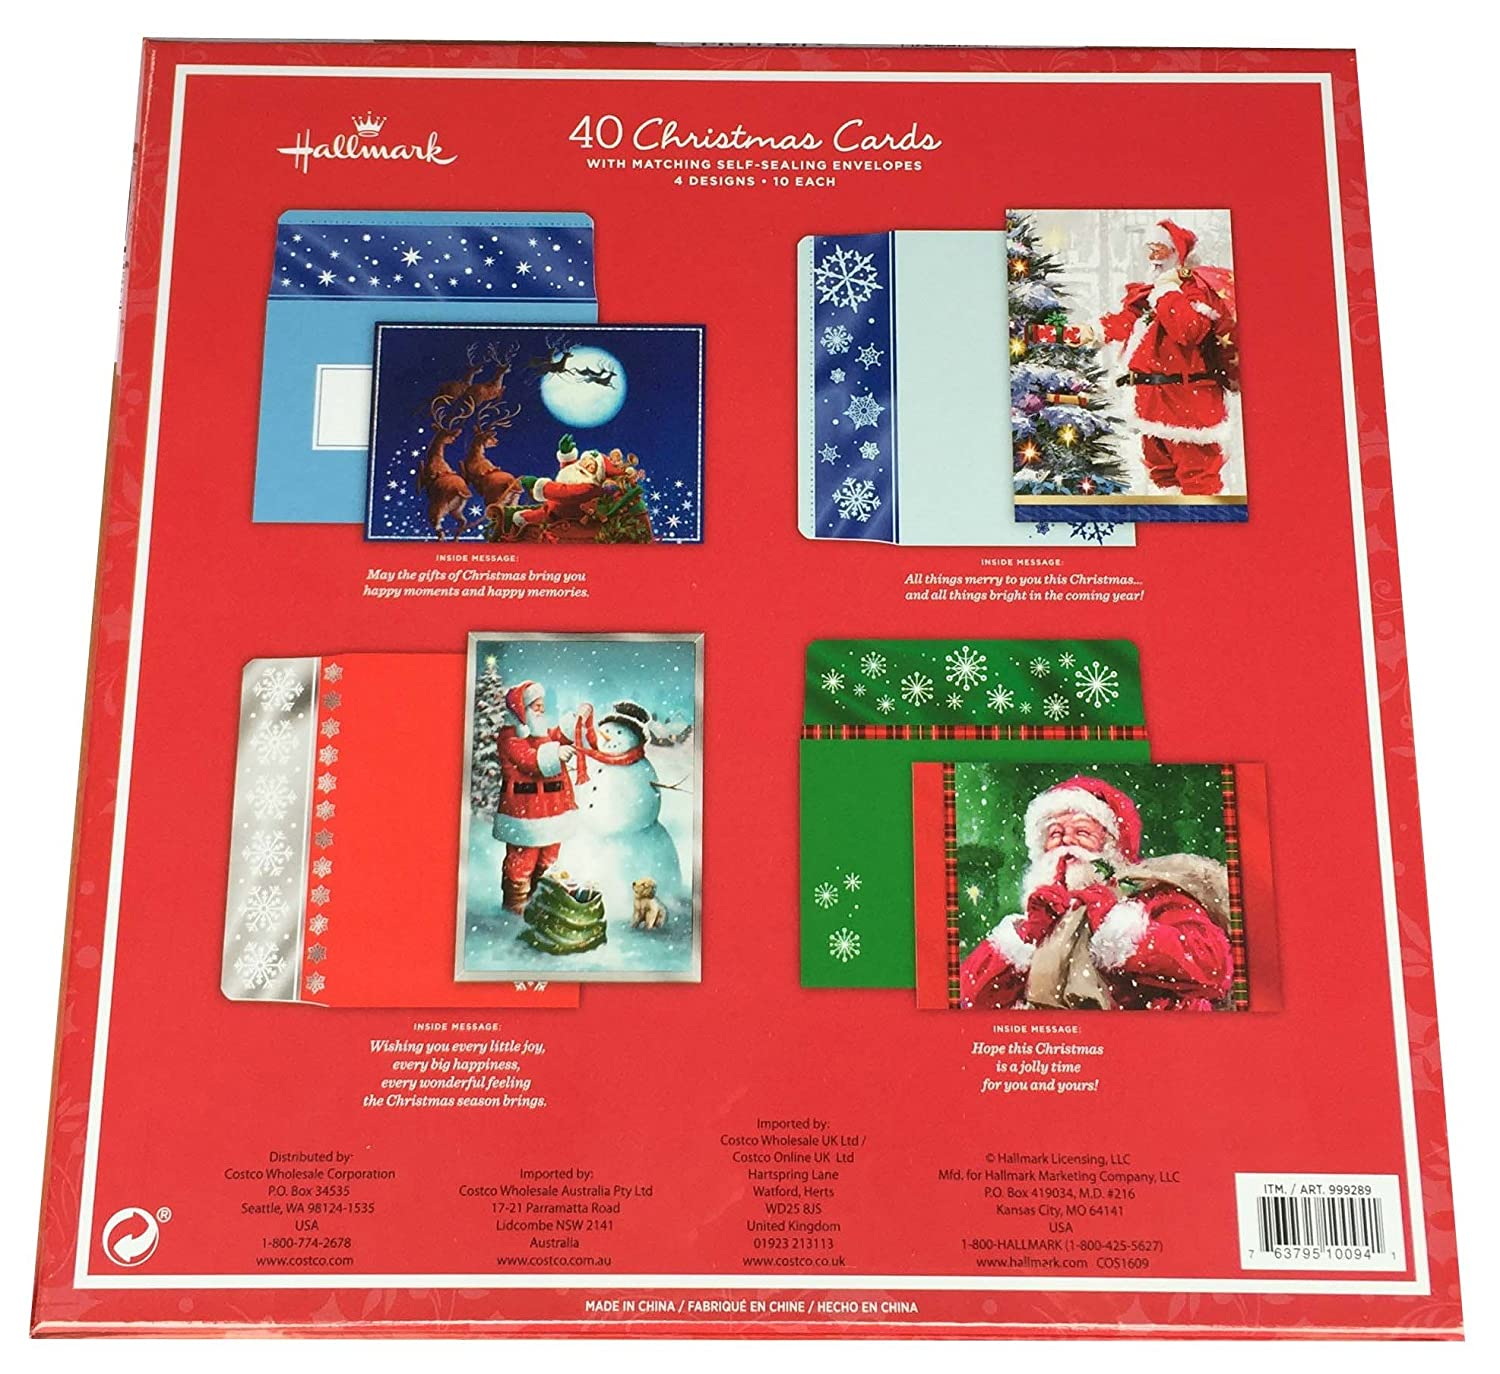 Hallmark 40 Christmas Holiday Cards with Matching Self Sealing Envelopes - 4 Designs 10 Each (Santa)